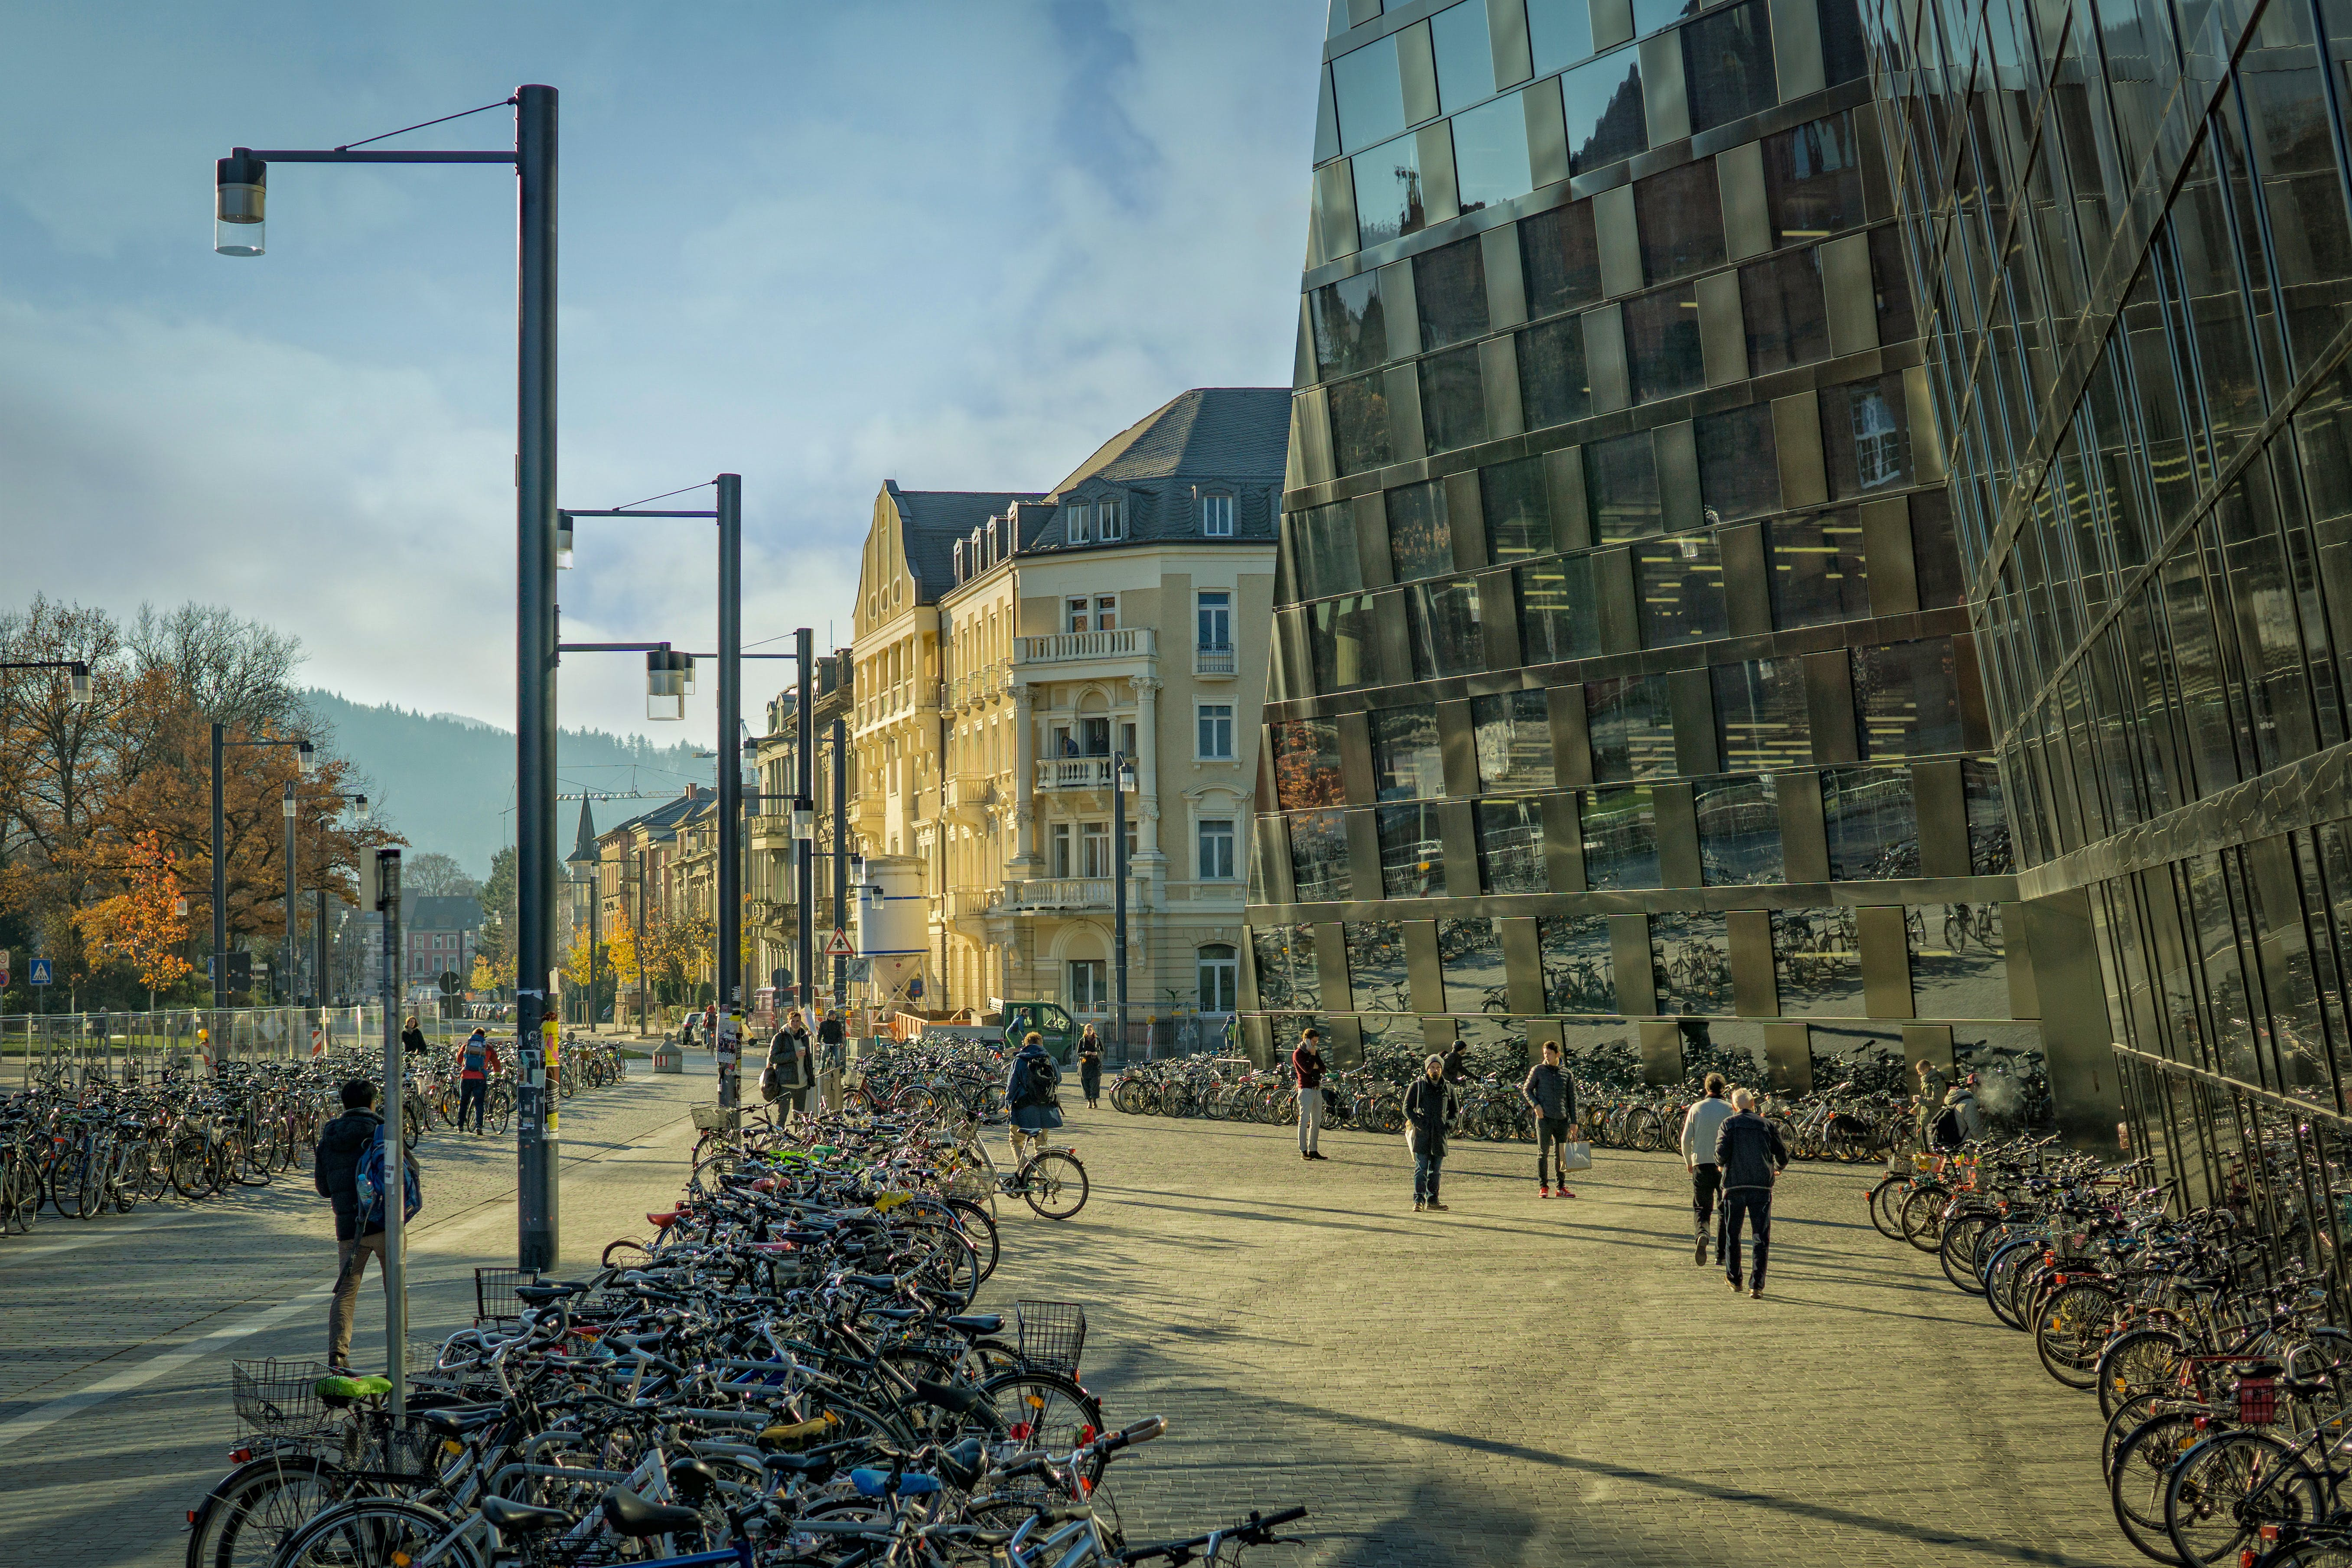 architecture, bicycles, buildings